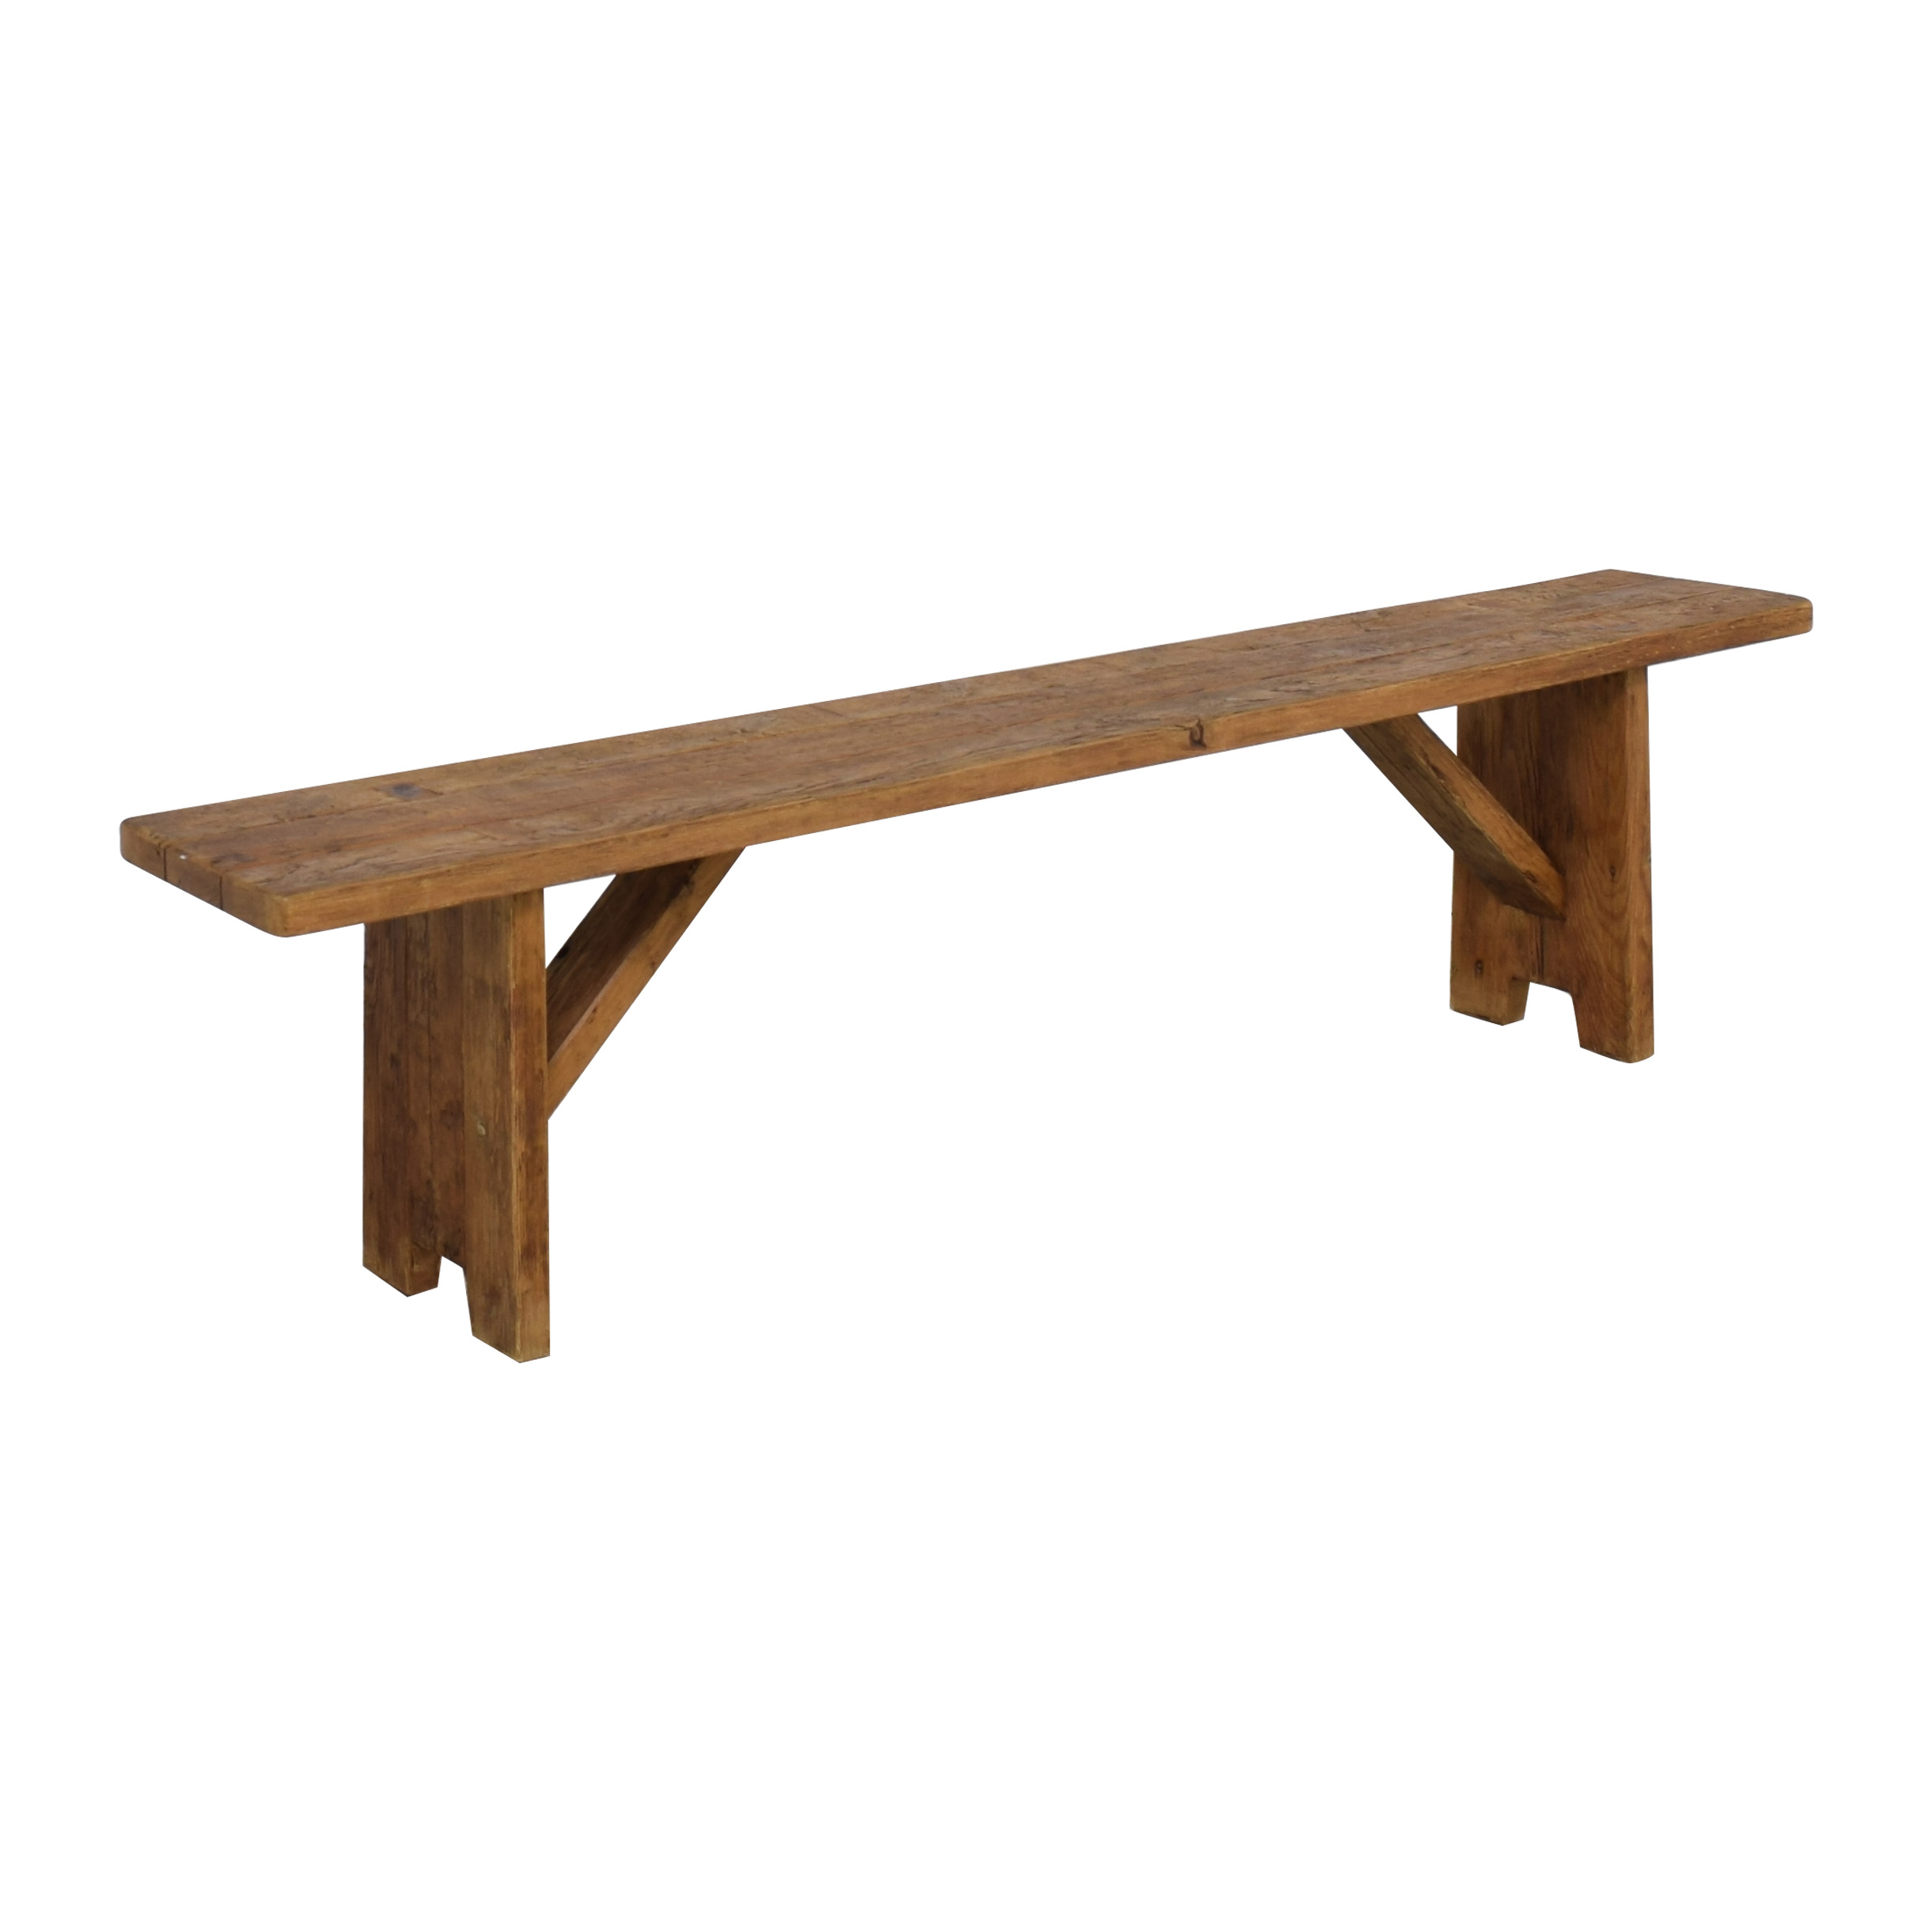 Restoration Hardware Restoration Hardware Barnwood Bench on sale